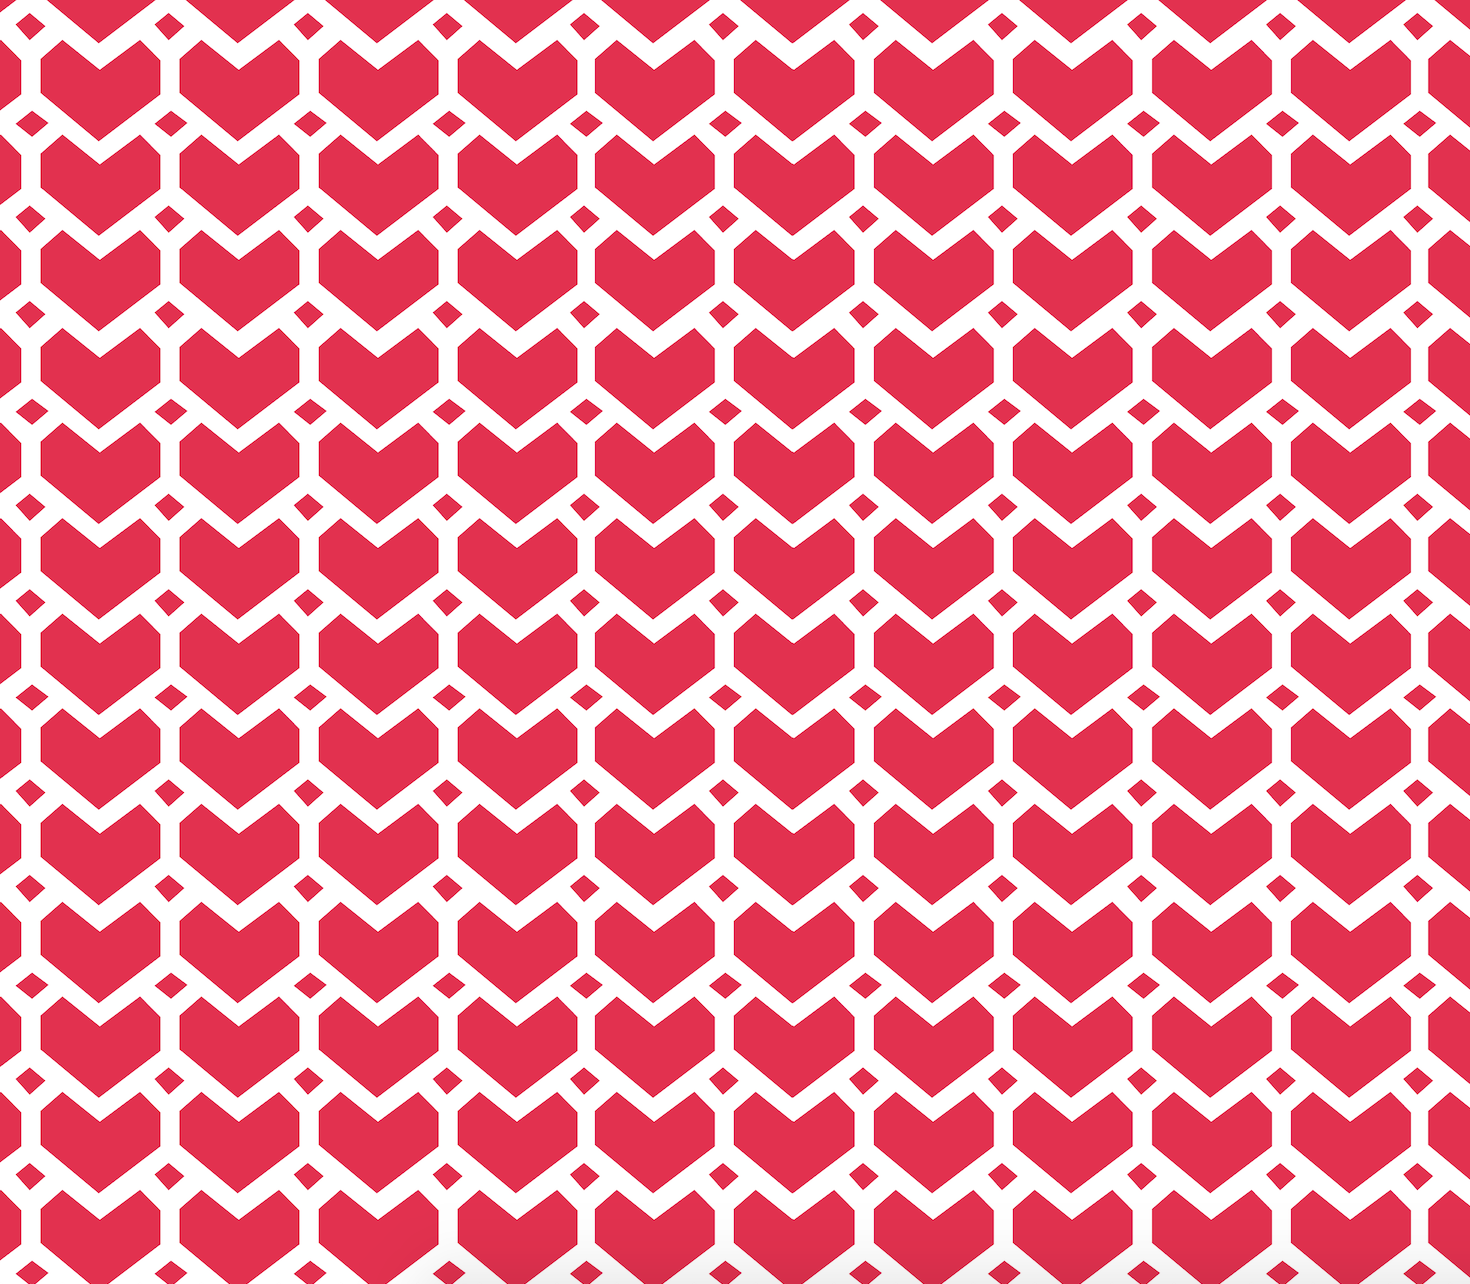 Heart shaped pattern with white hearts on red background